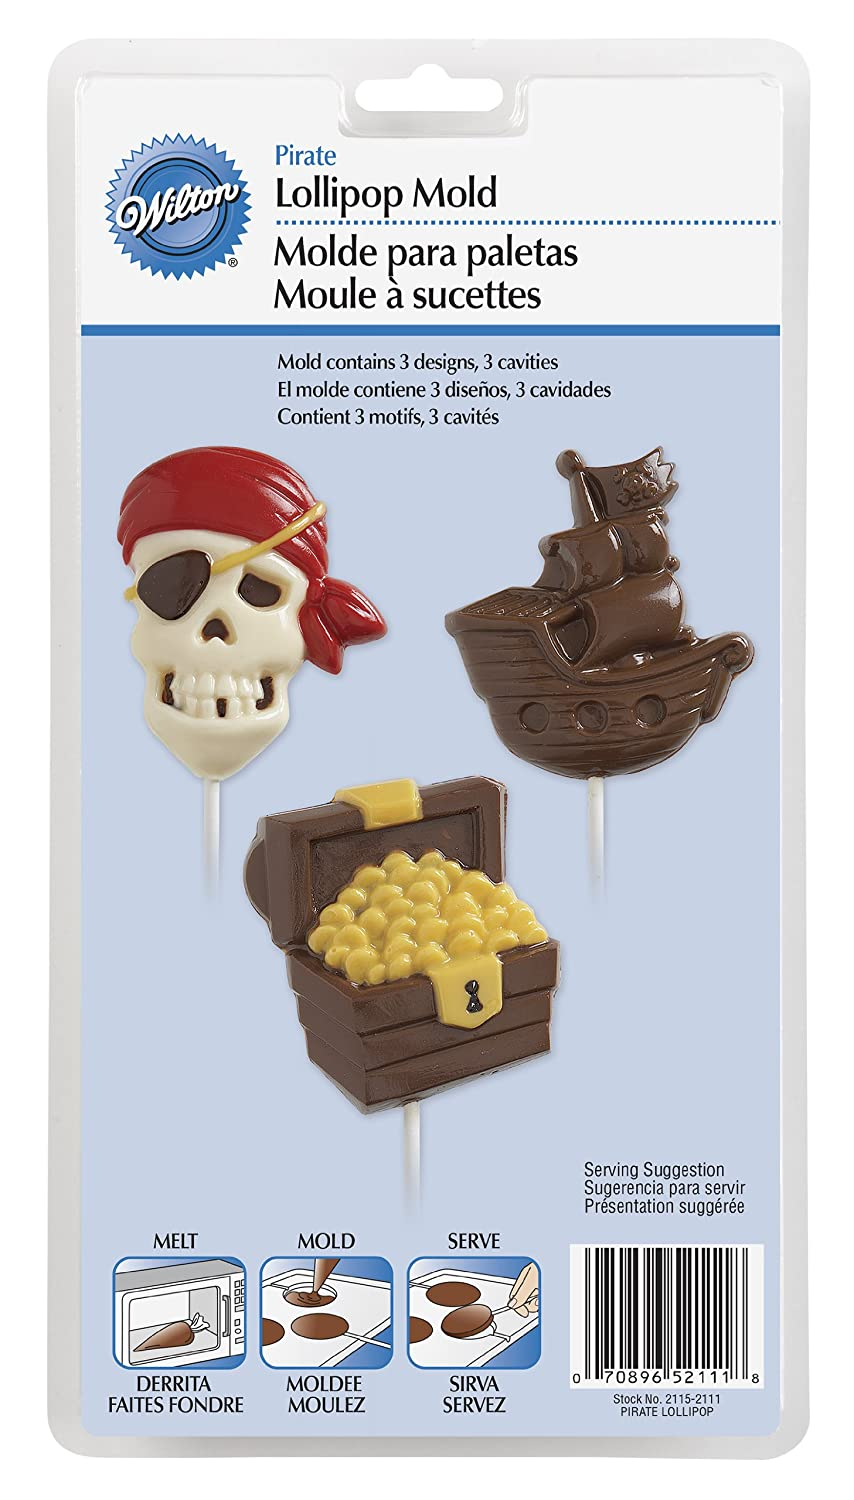 Amazon.com: Wilton 2115-2111 Pirate Lollipop Mold, Large, 3 Designs: Kitchen & Dining